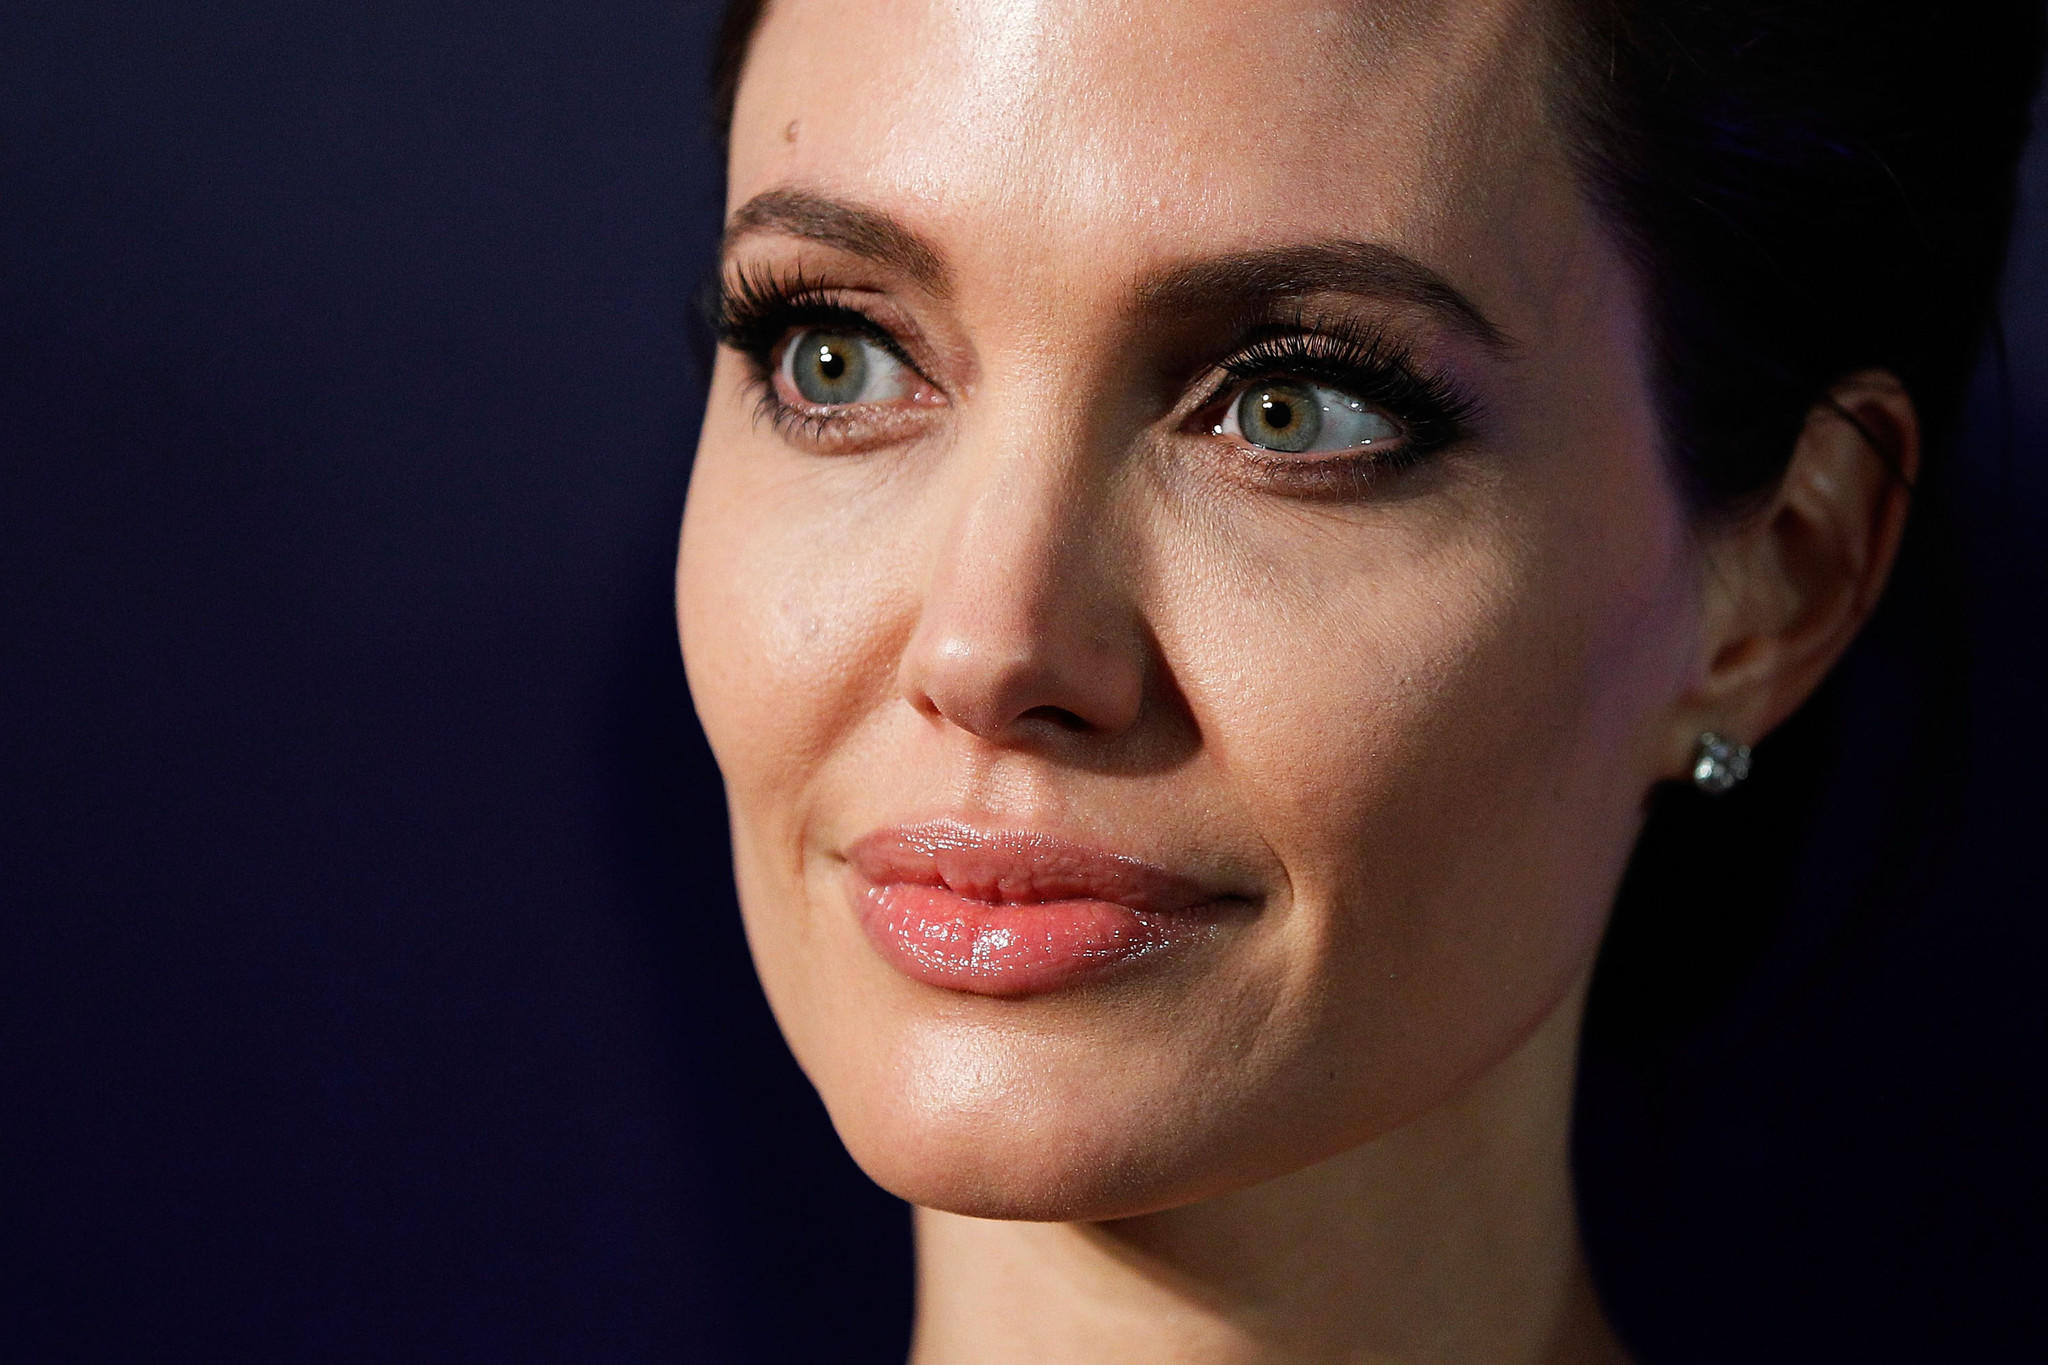 Vanity Fair stands by Angelina Jolie story, publishes interview transcript